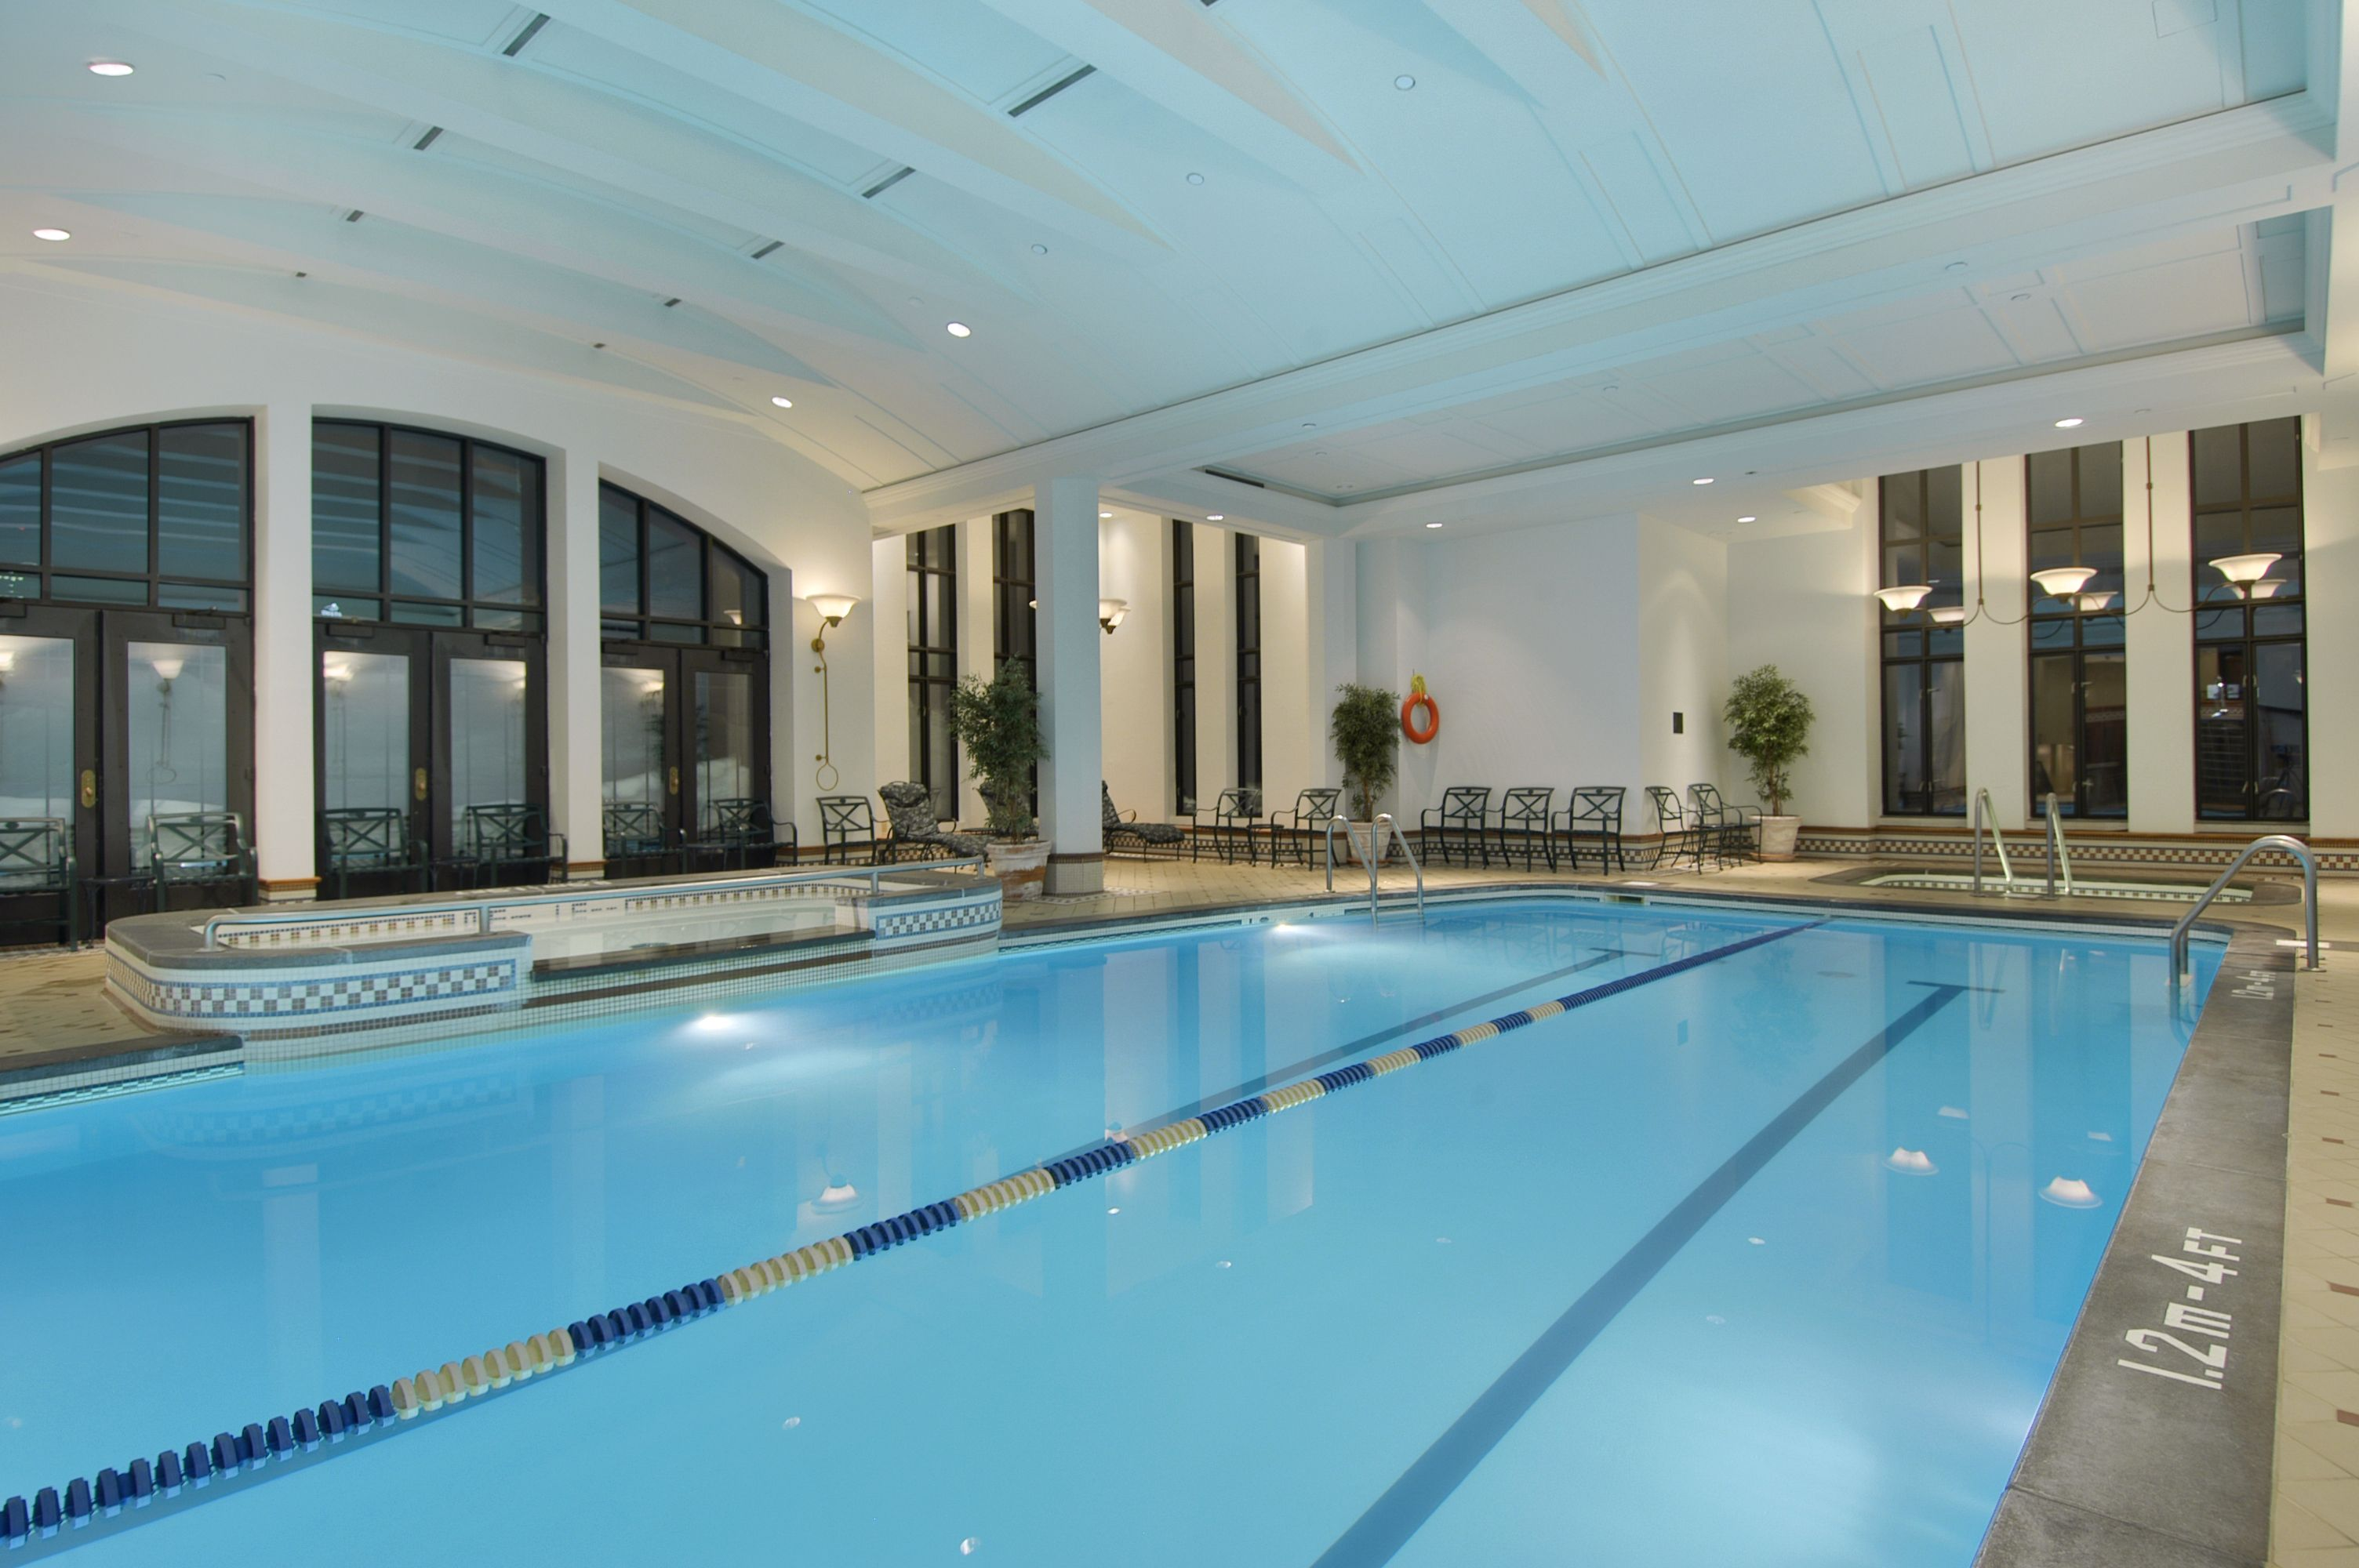 Fairmont indoor pool for Club piscine quebec city